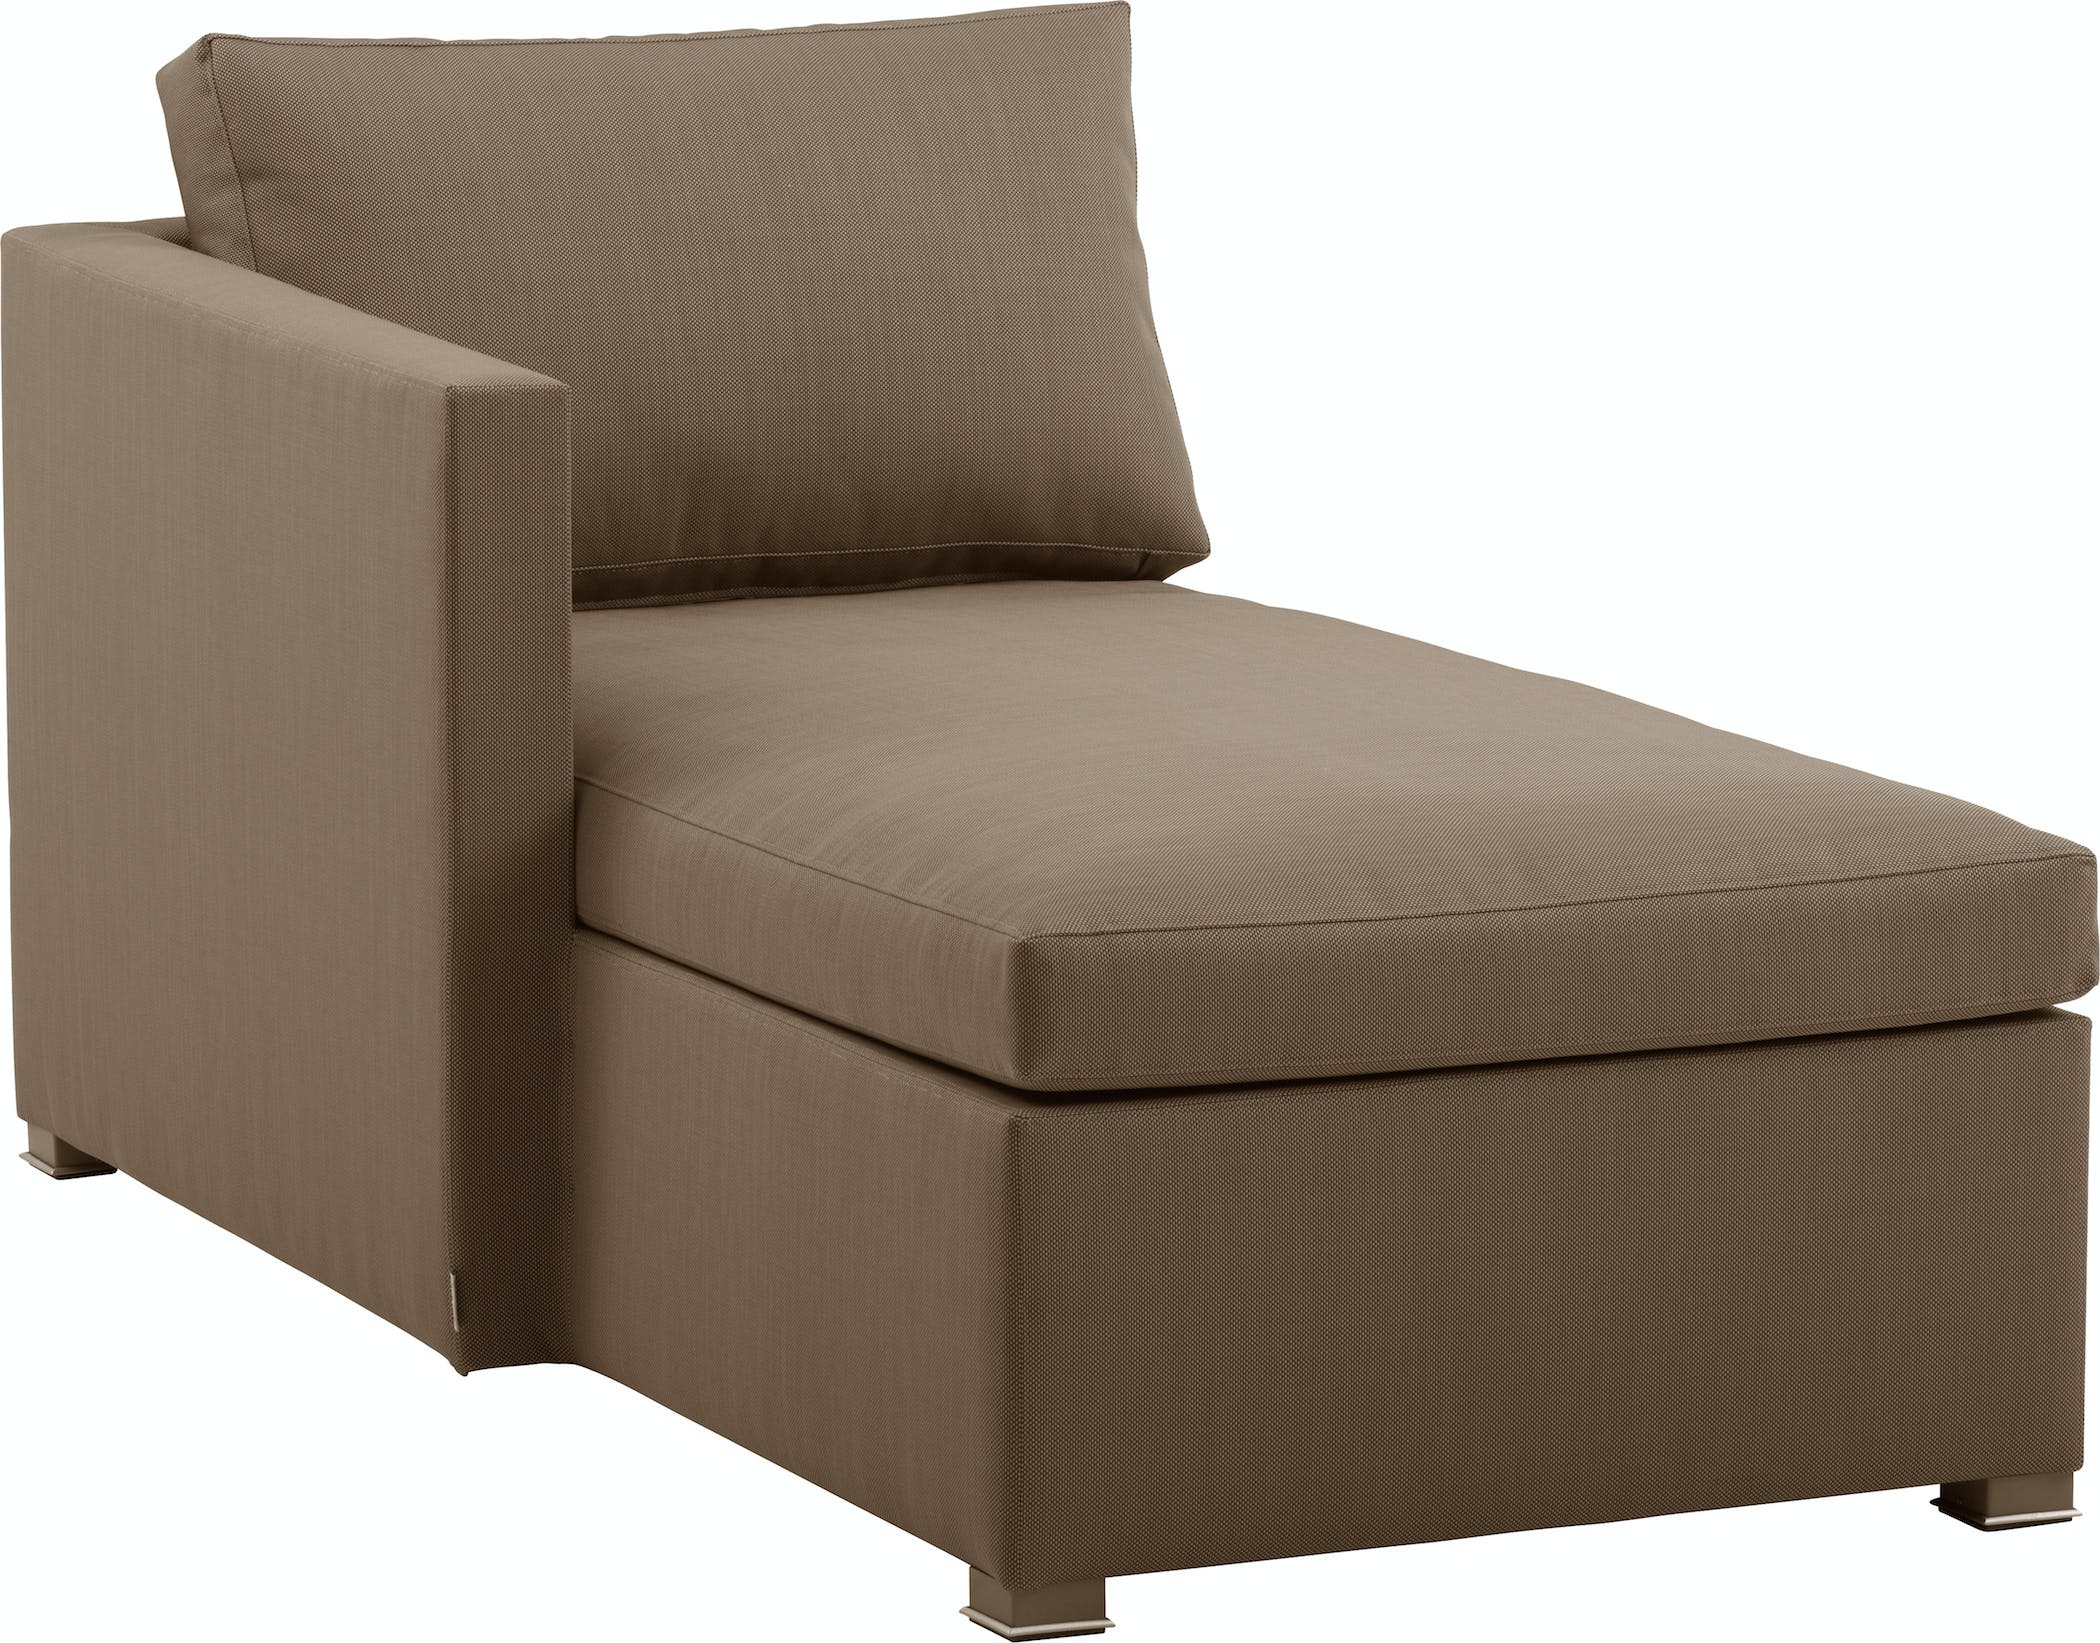 Shape Chaiselounge Right Brown